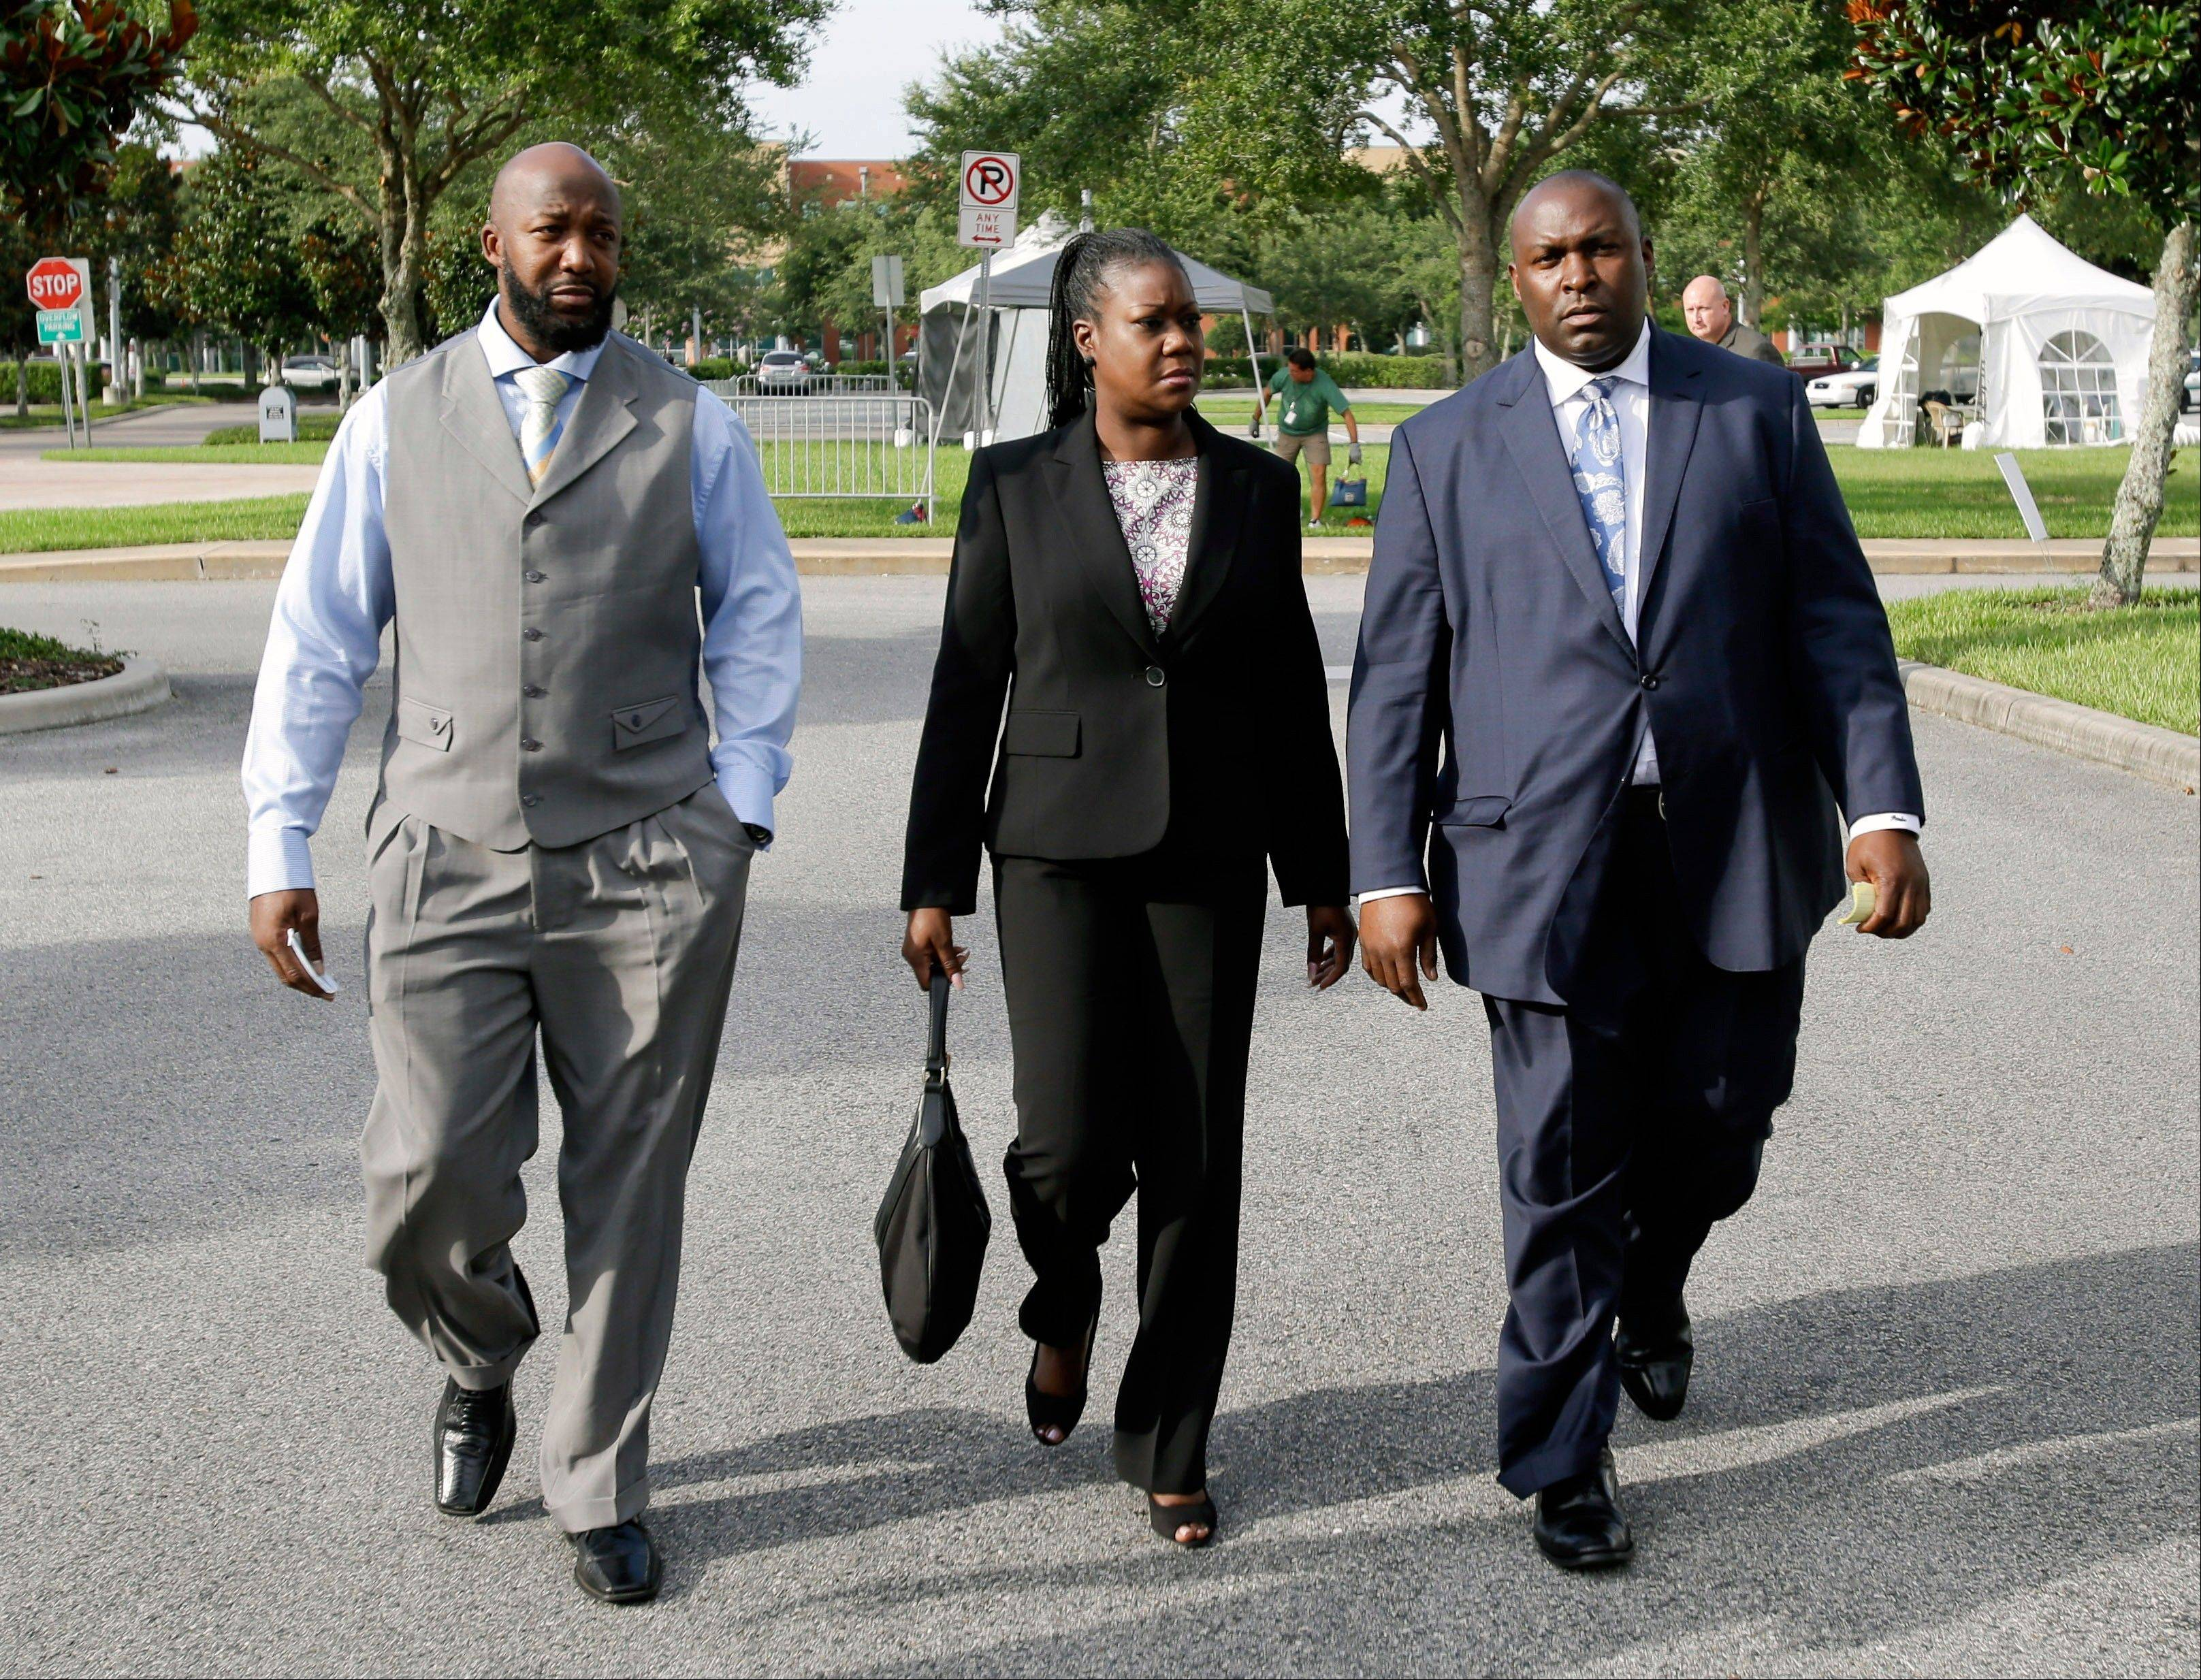 Tracy Martin, left, and Sybrina Fulton, center, parents of slain teen Trayvon Martin, leave the Seminole County Courthouse Thursday with their attorney Daryl Parks at the end of the day's proceedings in the trial of George Zimmerman, in Sanford, Fla.